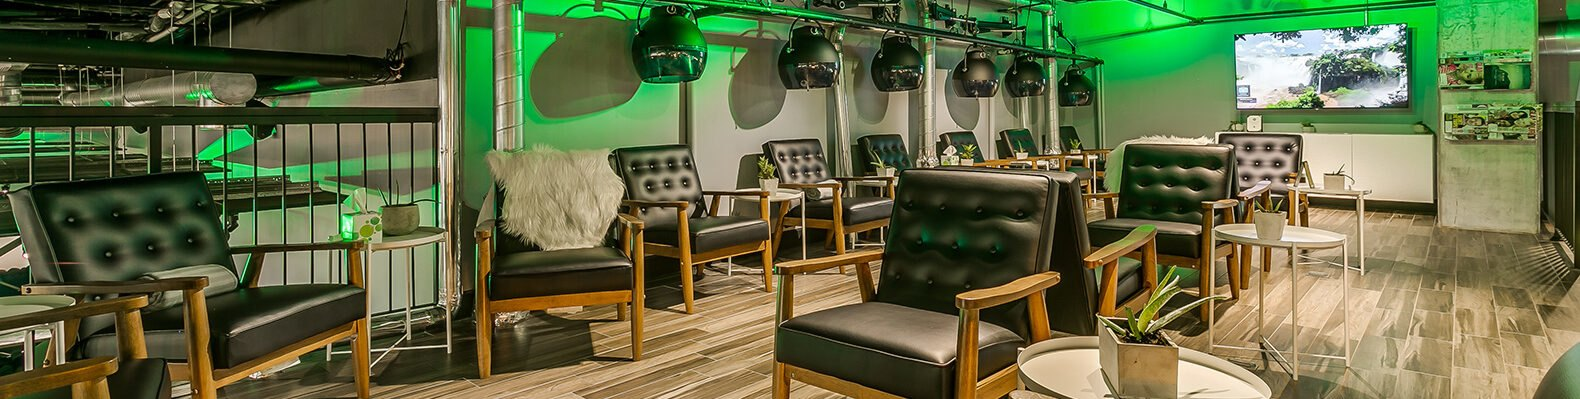 salon with black chairs and green lights